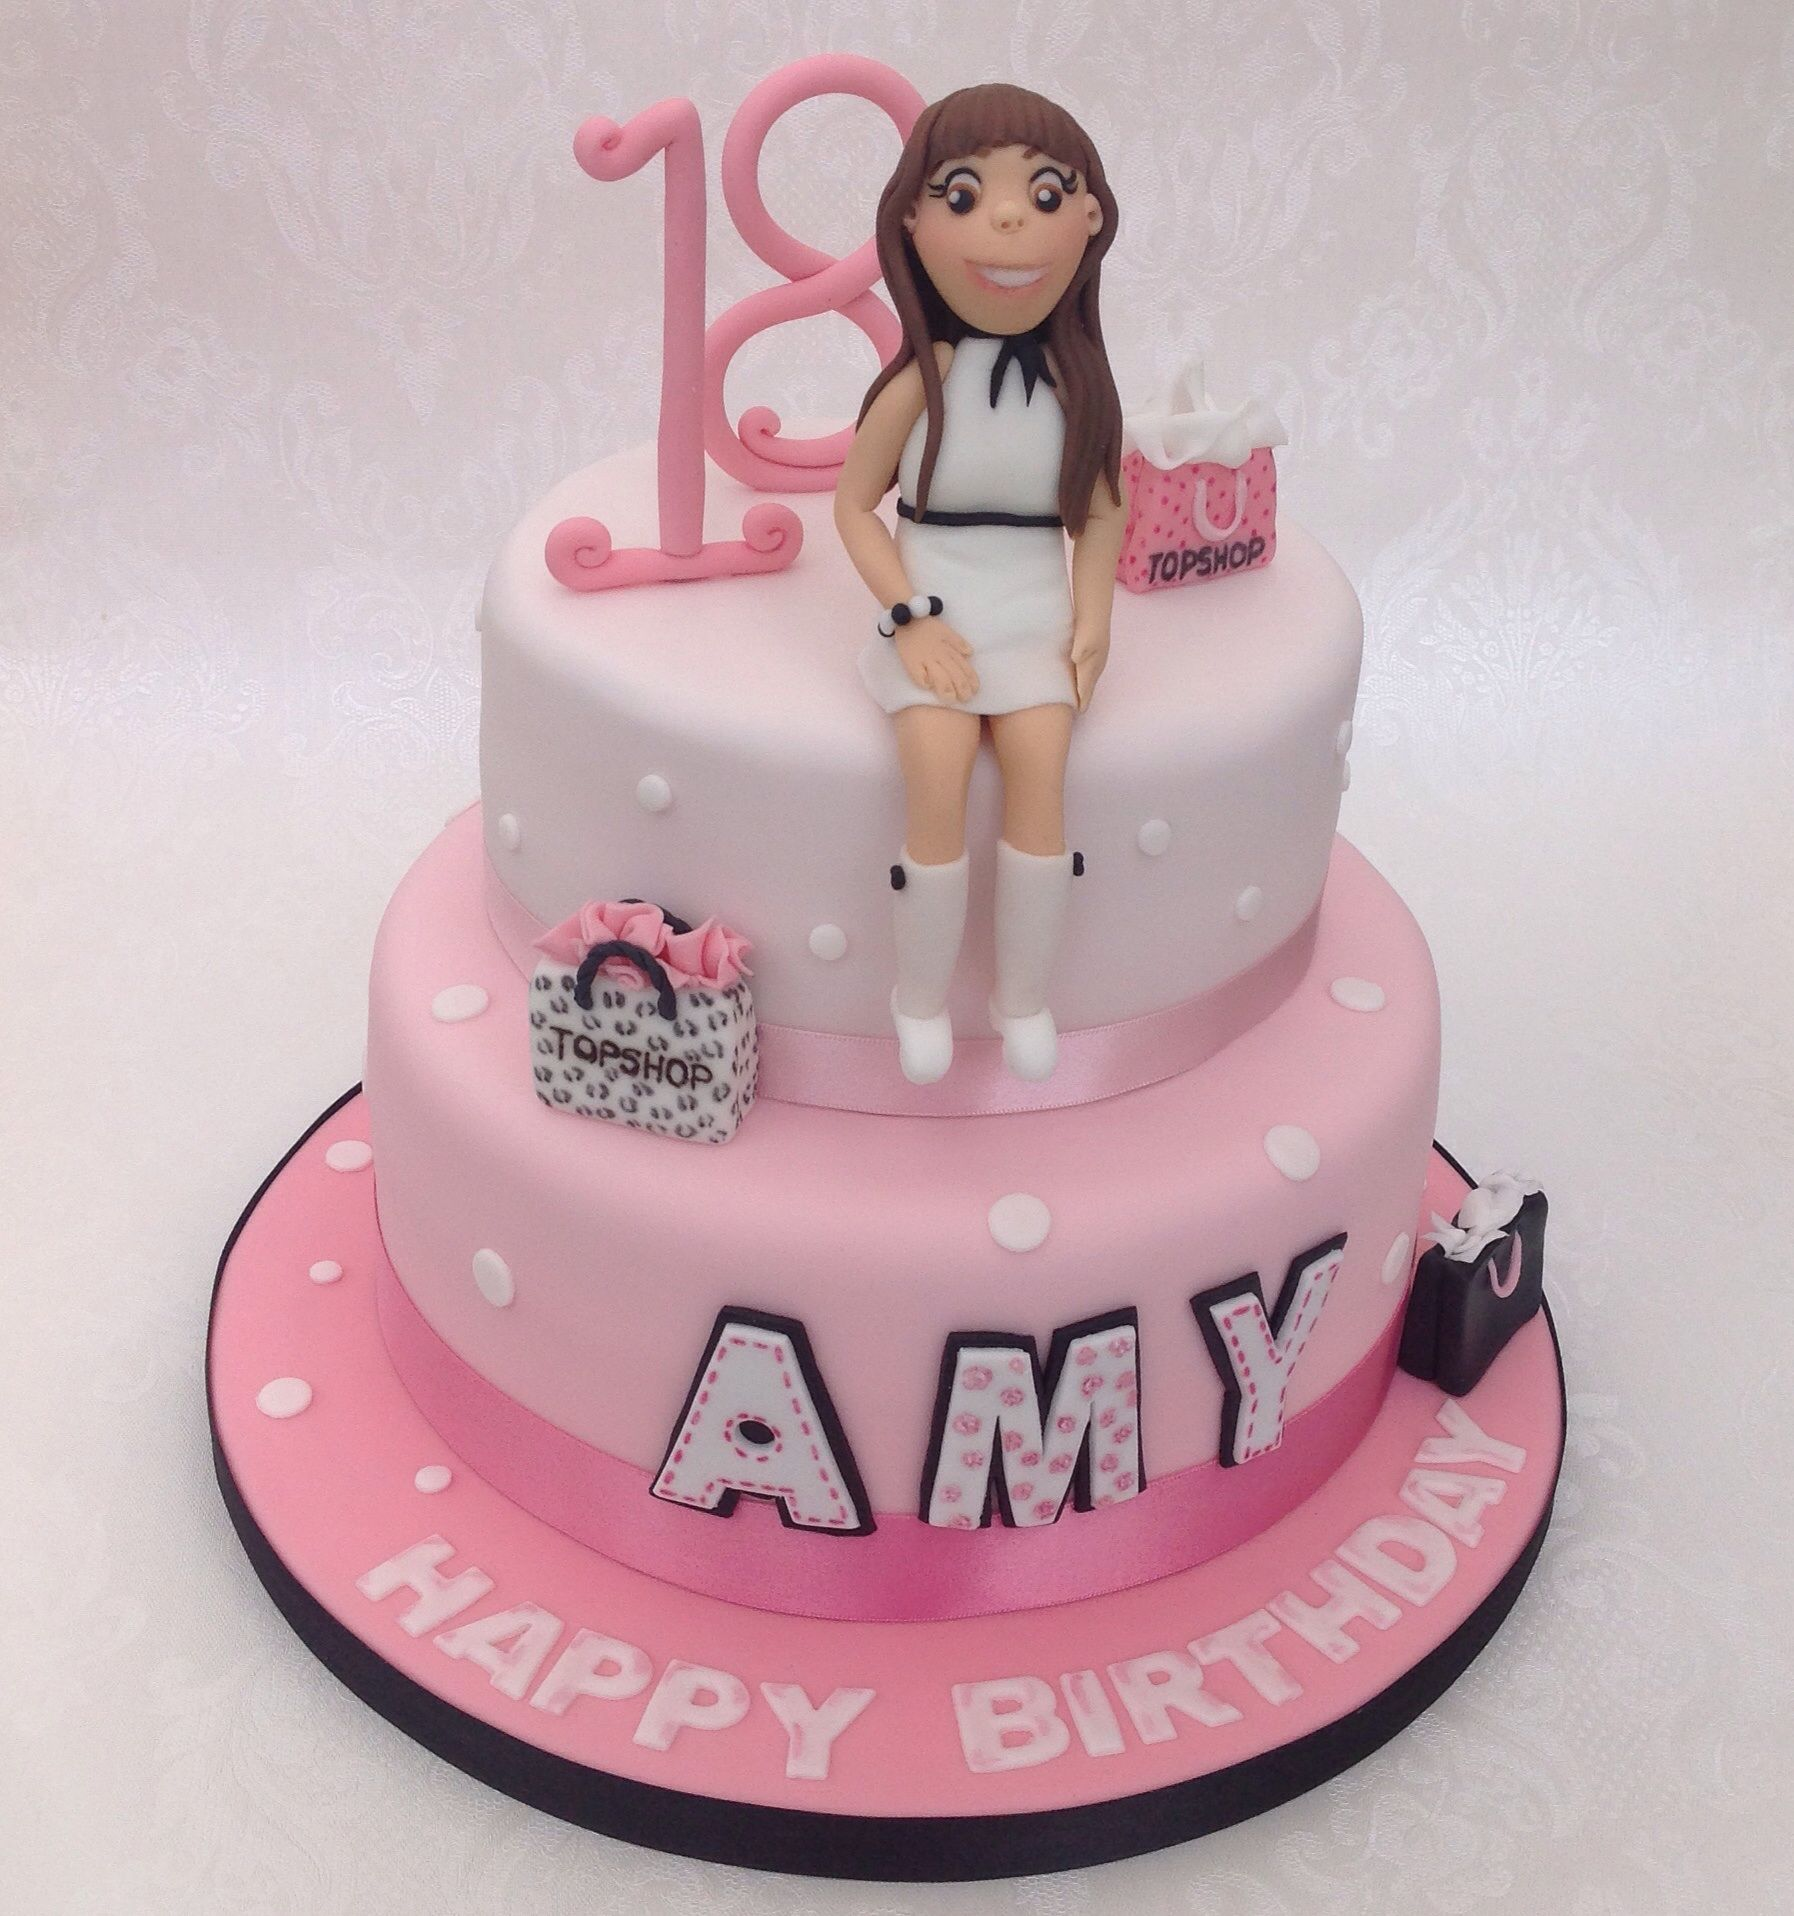 Top Shop 18th Birthday Cake Two Tier Vanilla Cake With Fondant And